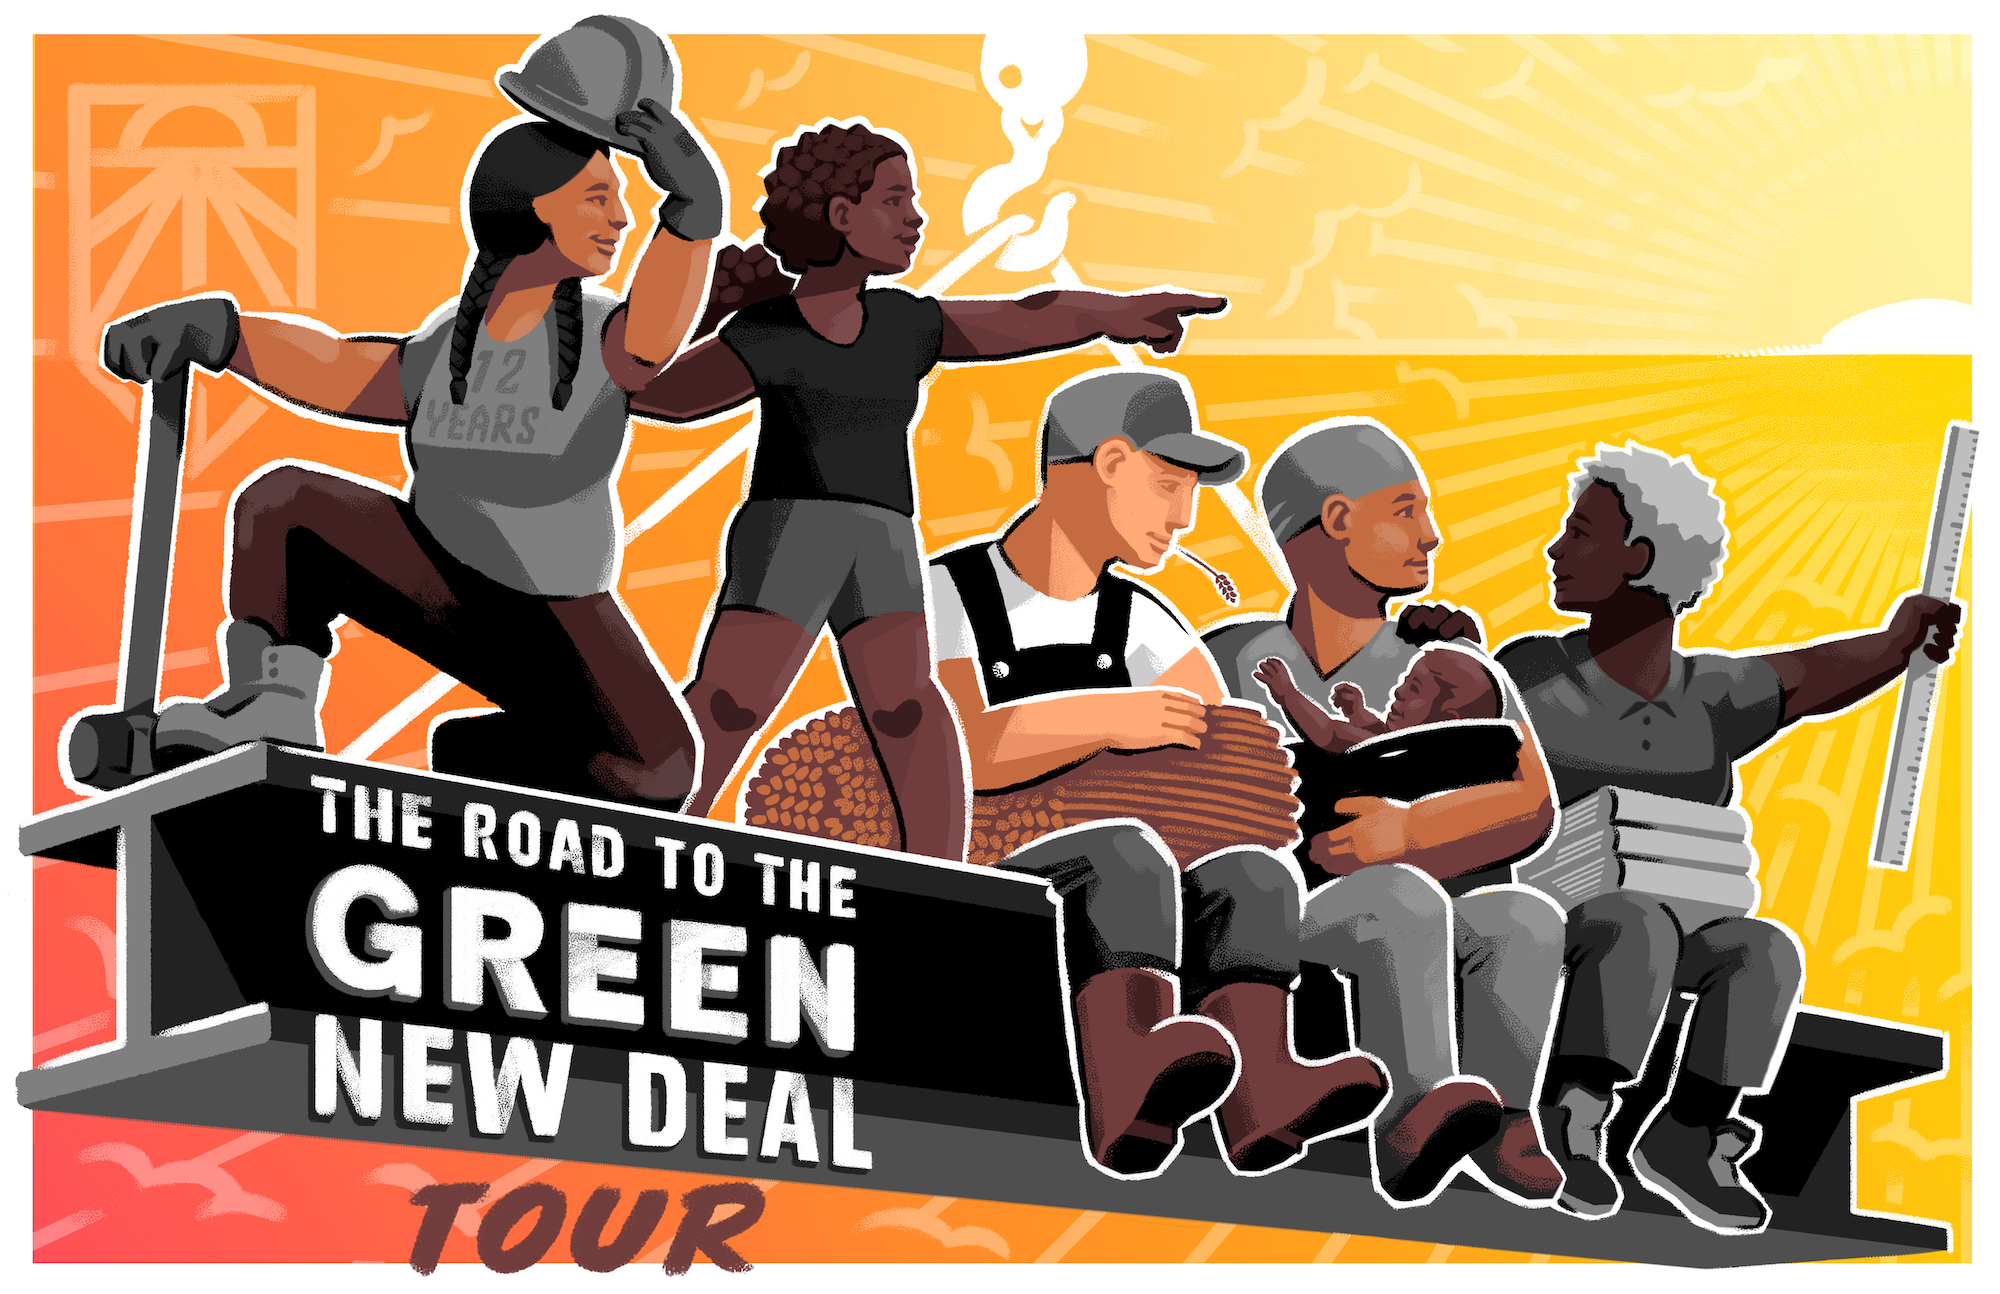 Windsor event: Road to the Green New Deal